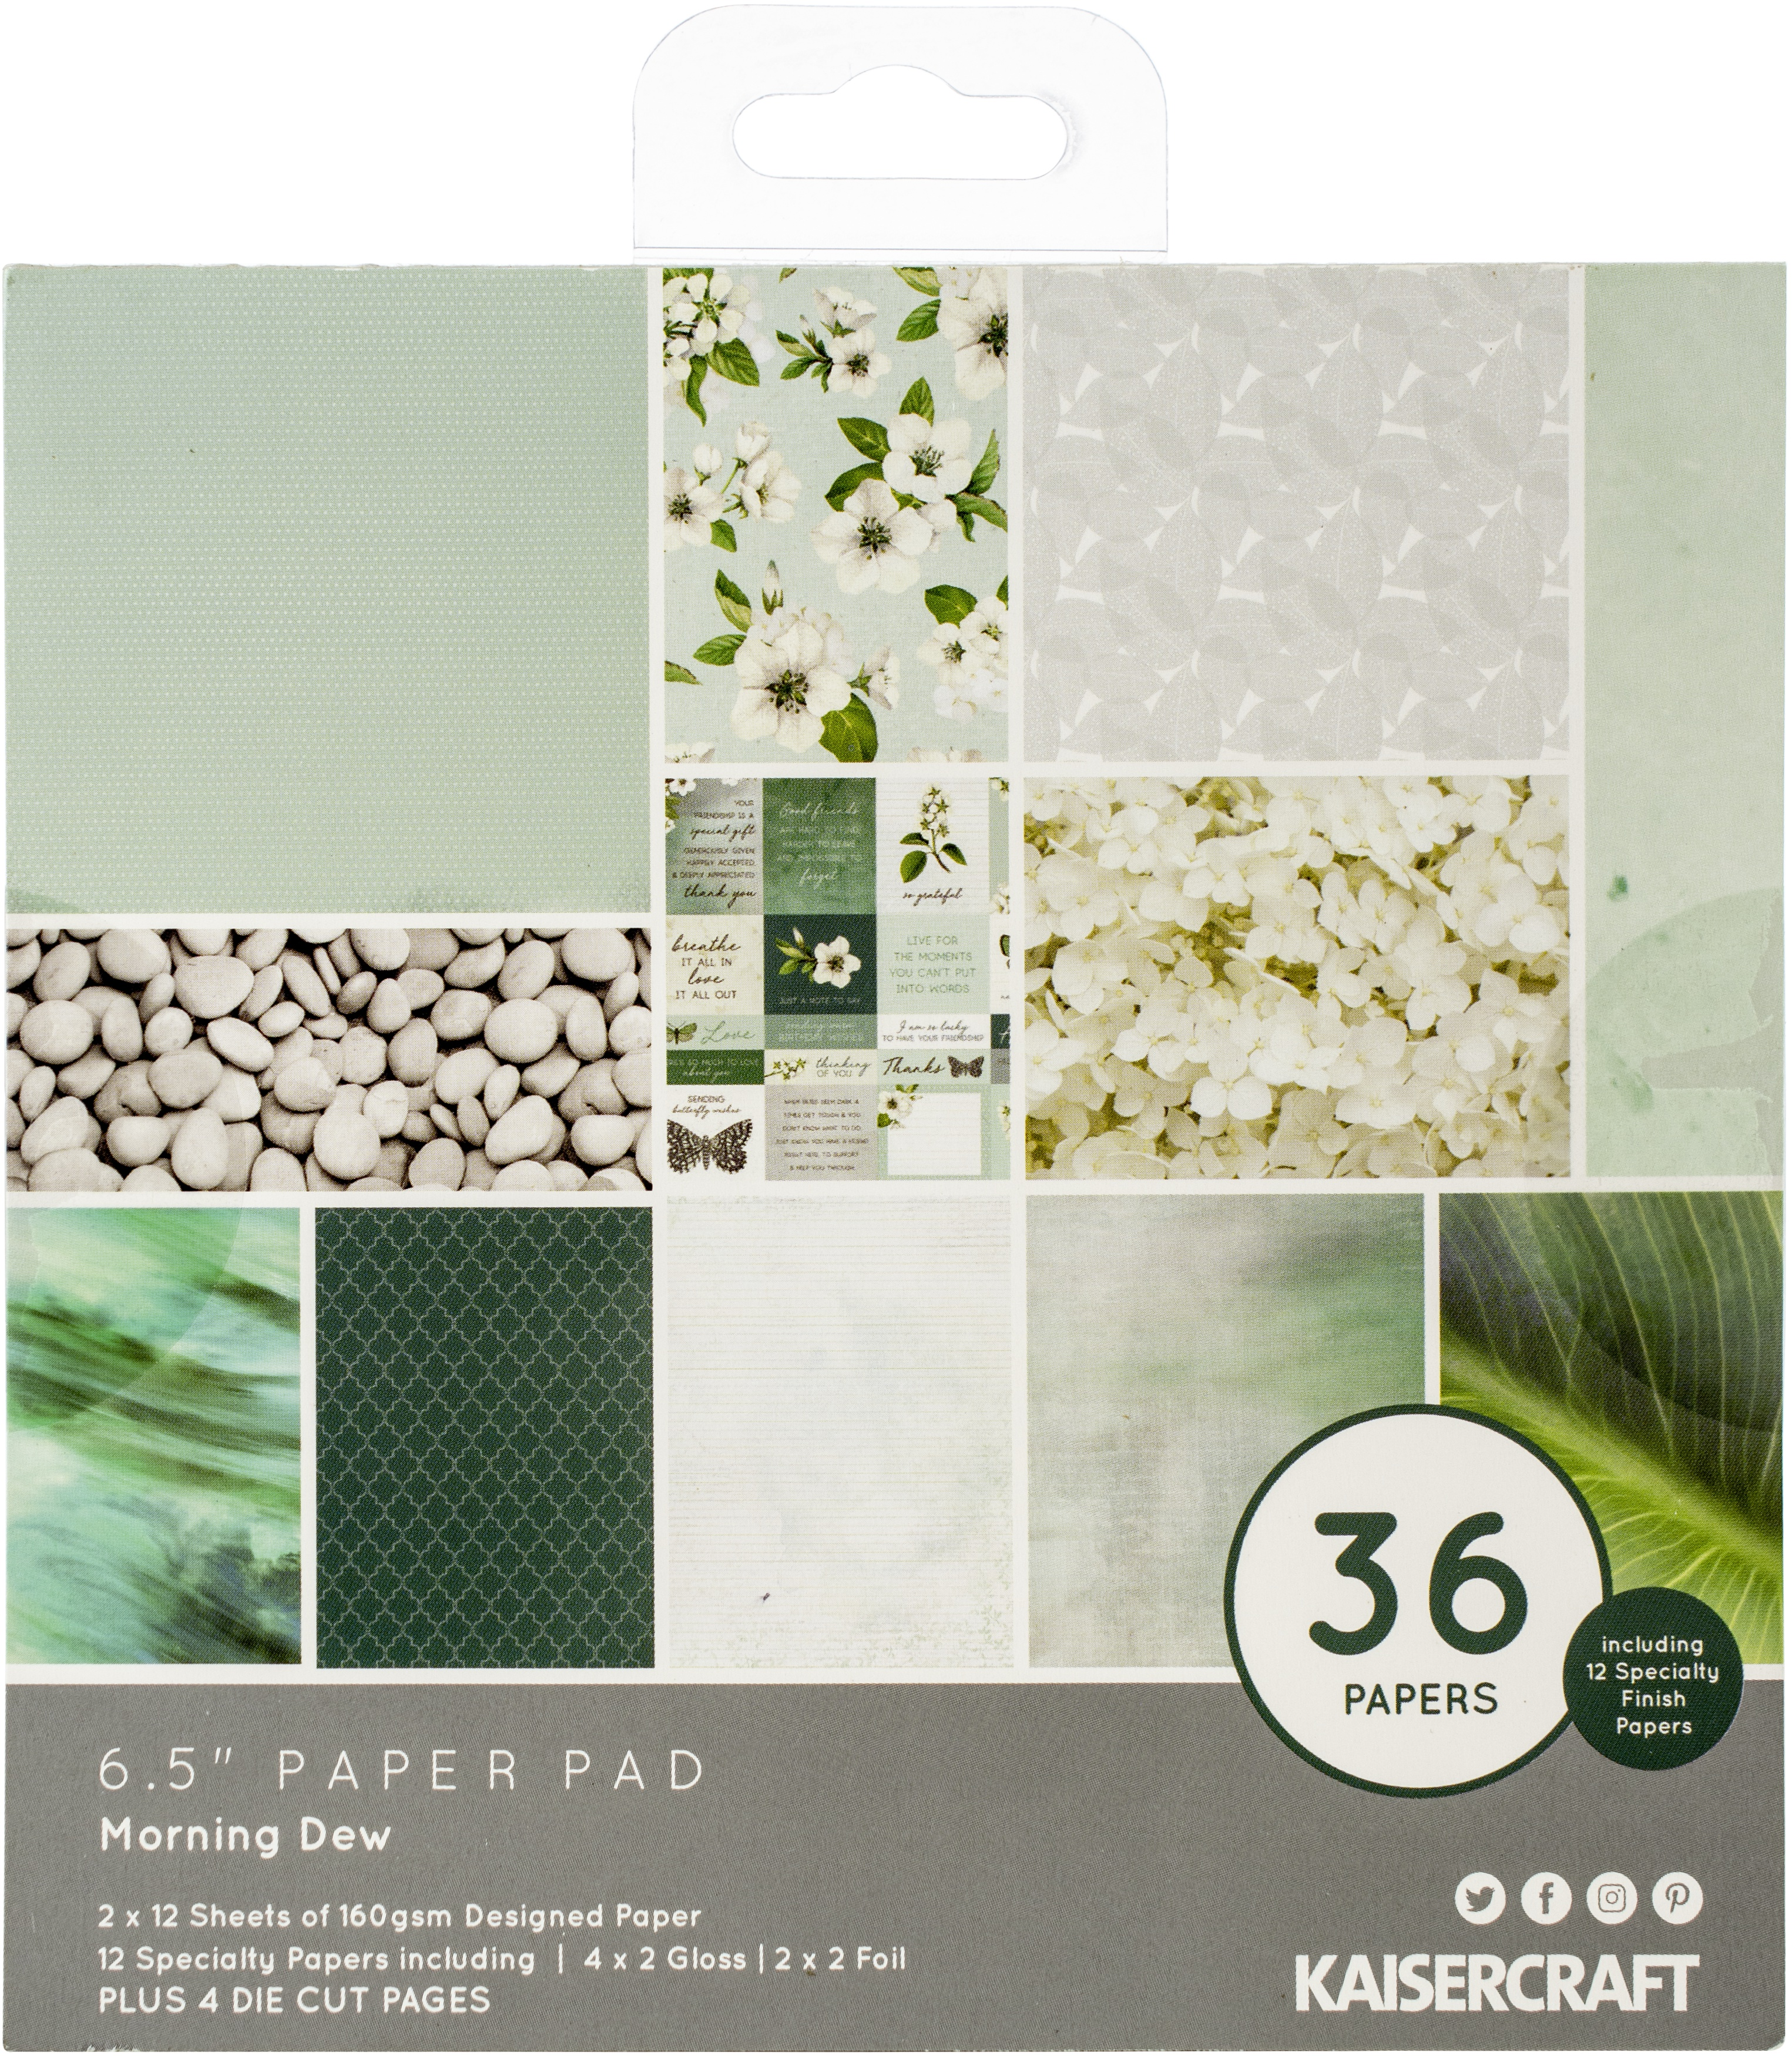 Kaisercraft - Morning Dew - 6.5 Paper Pad